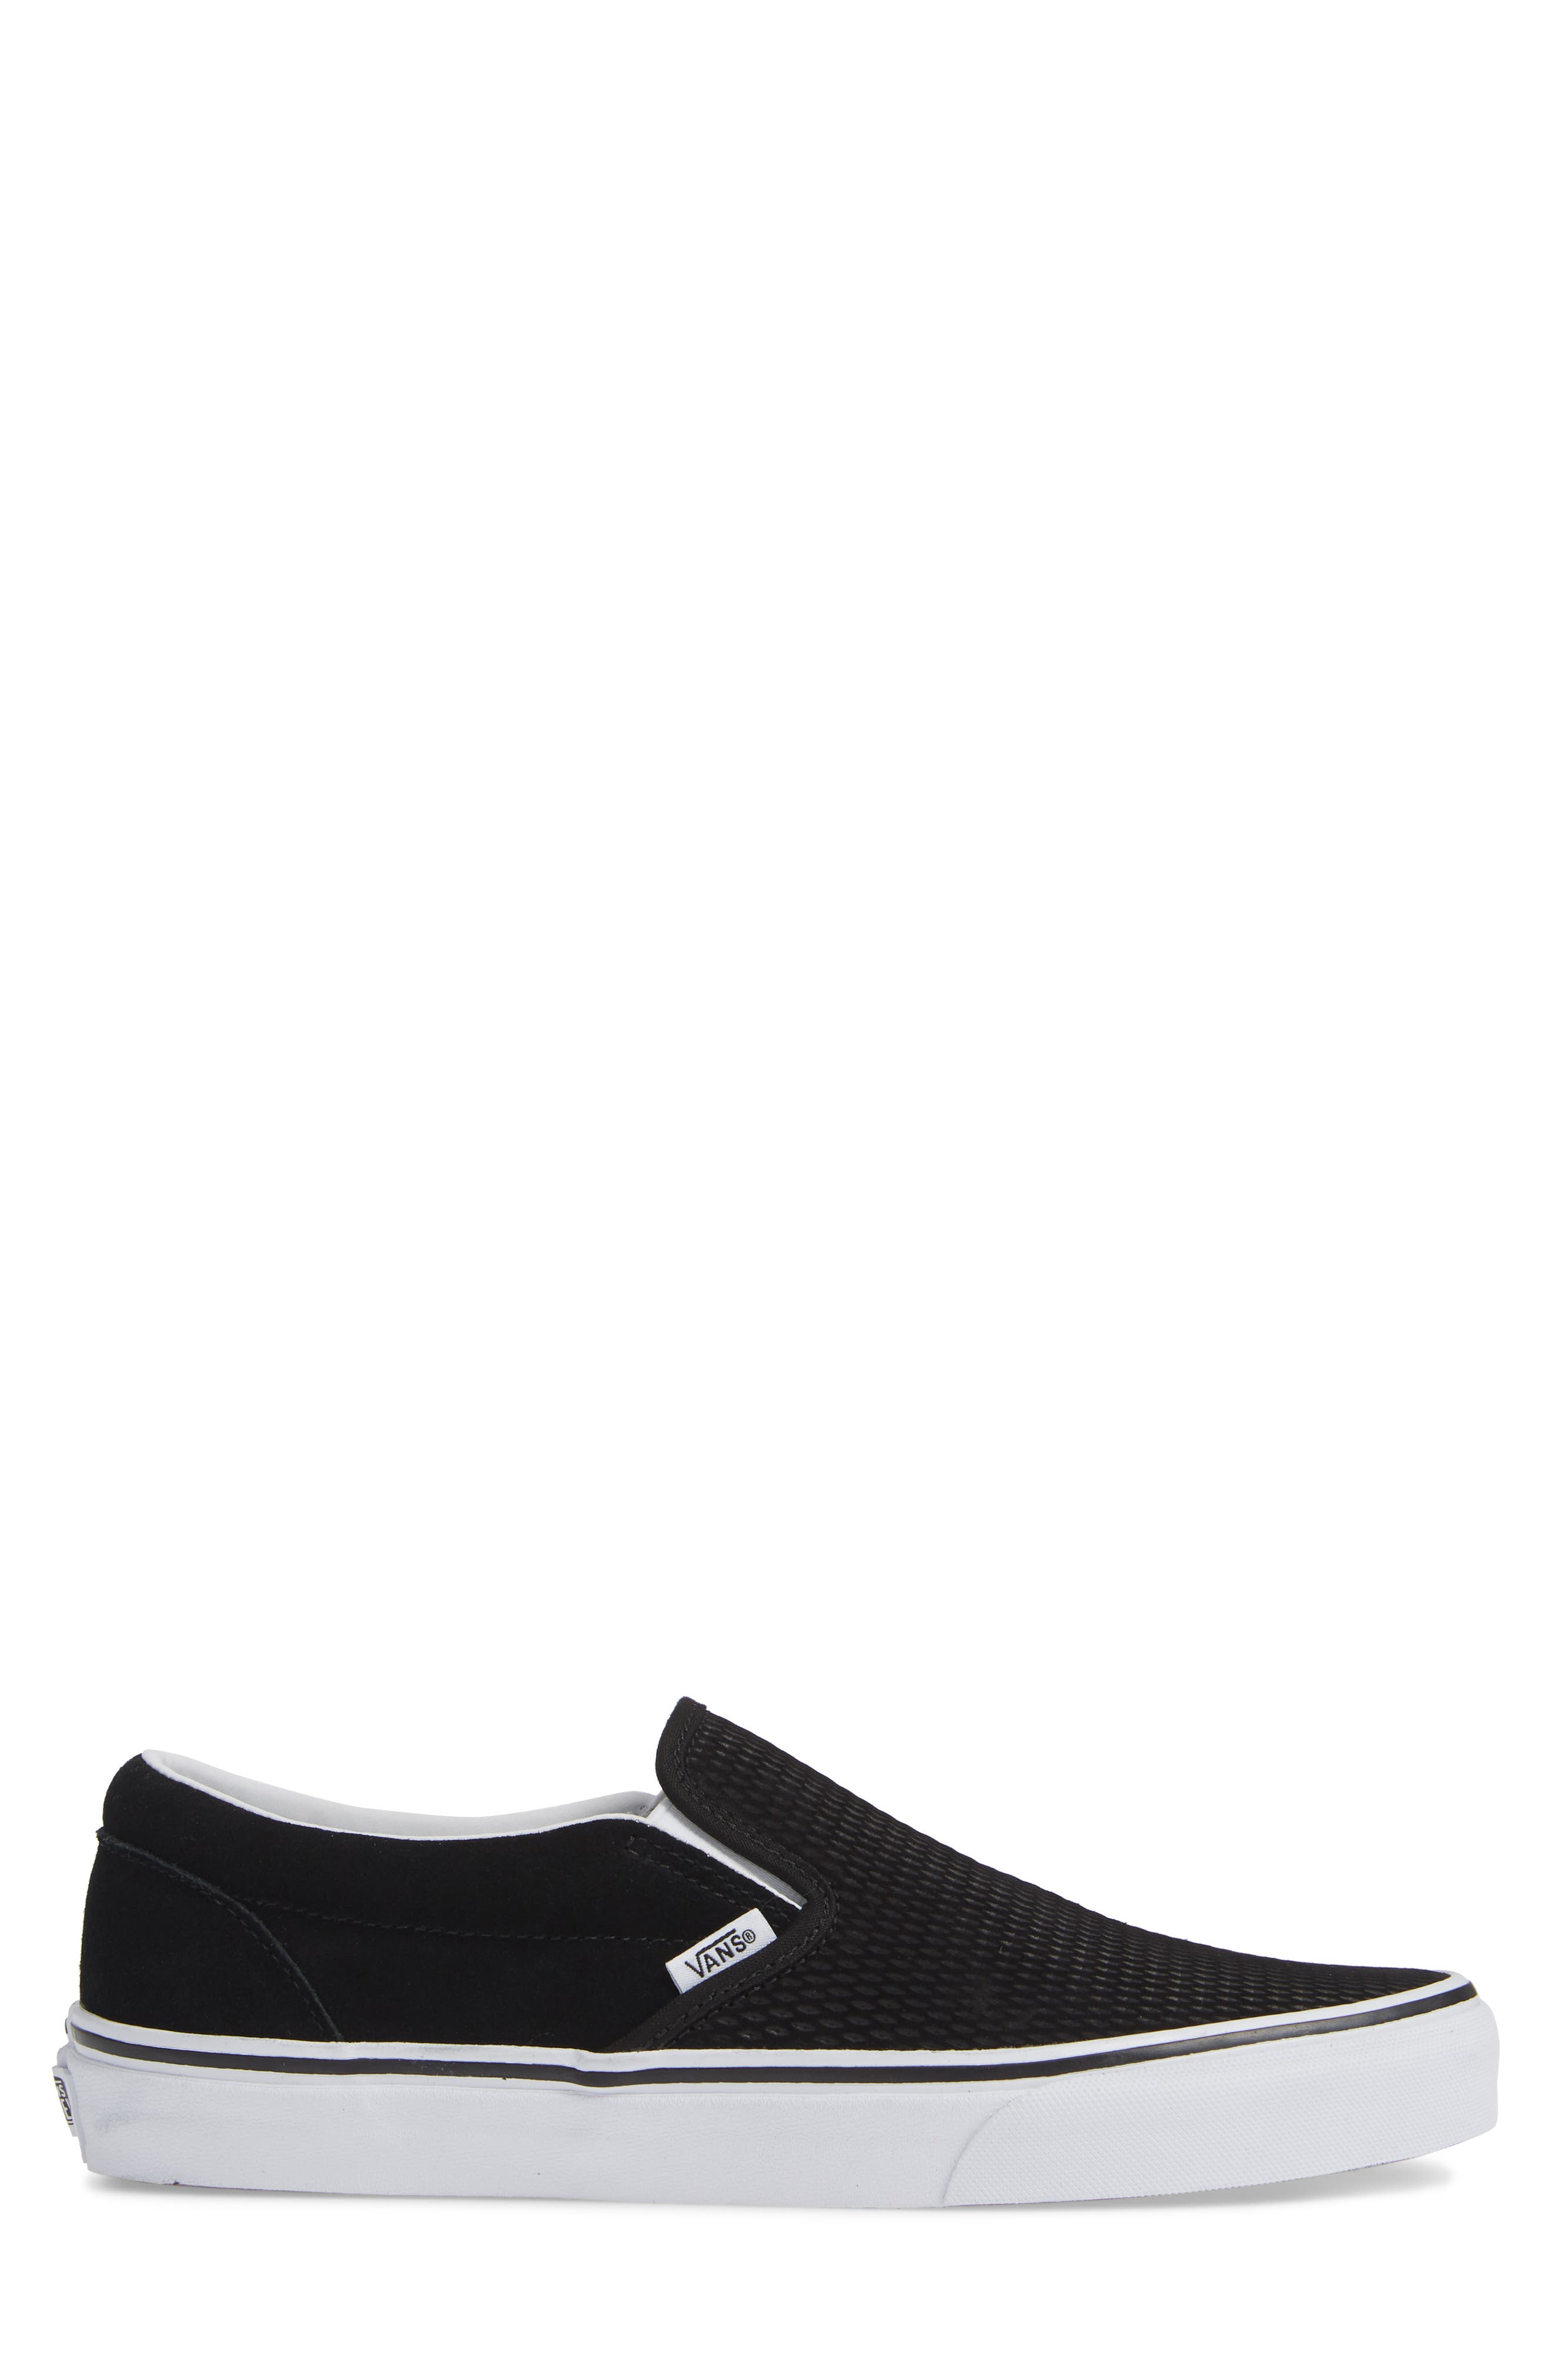 Classic Embossed Suede Slip-On,                             Alternate thumbnail 3, color,                             BLACK/ TRUE WHITE SUEDE